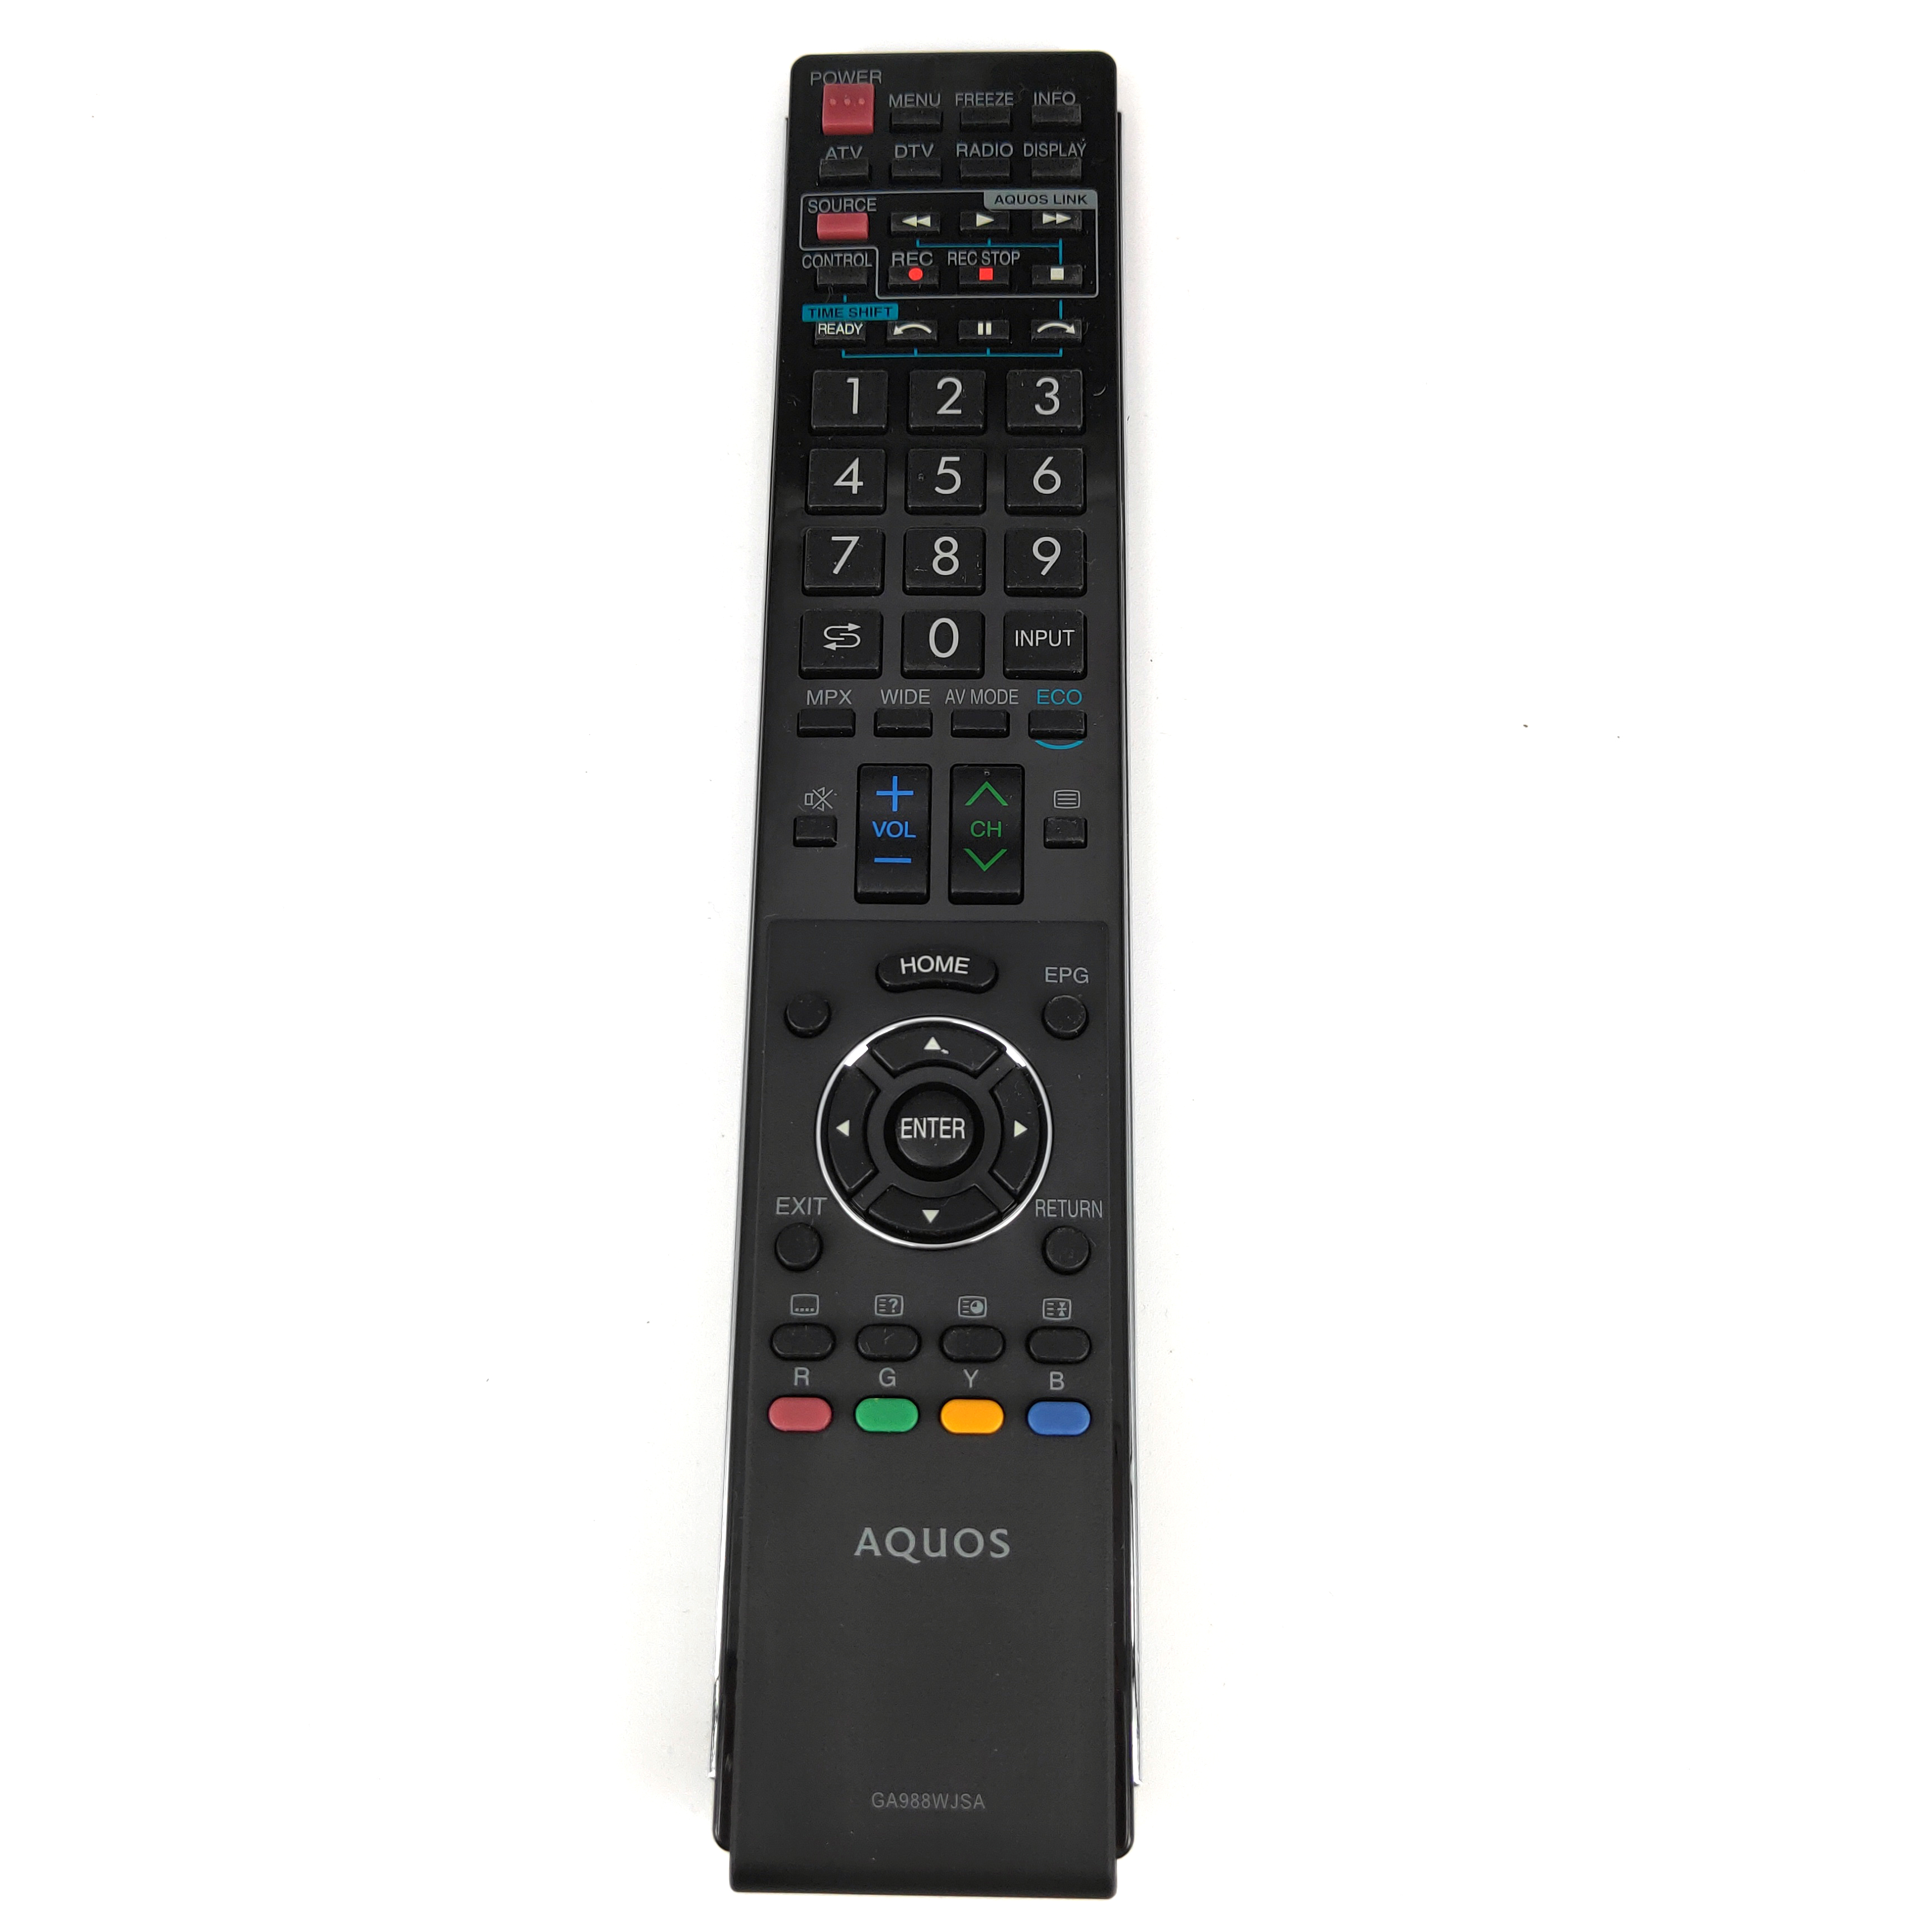 NEW Original for SHARP Aquos TV Remote Control GA988WJSA RRMCGA988WJSA for LC70LE735X LC 70LE735X Fernbedienung in Remote Controls from Consumer Electronics